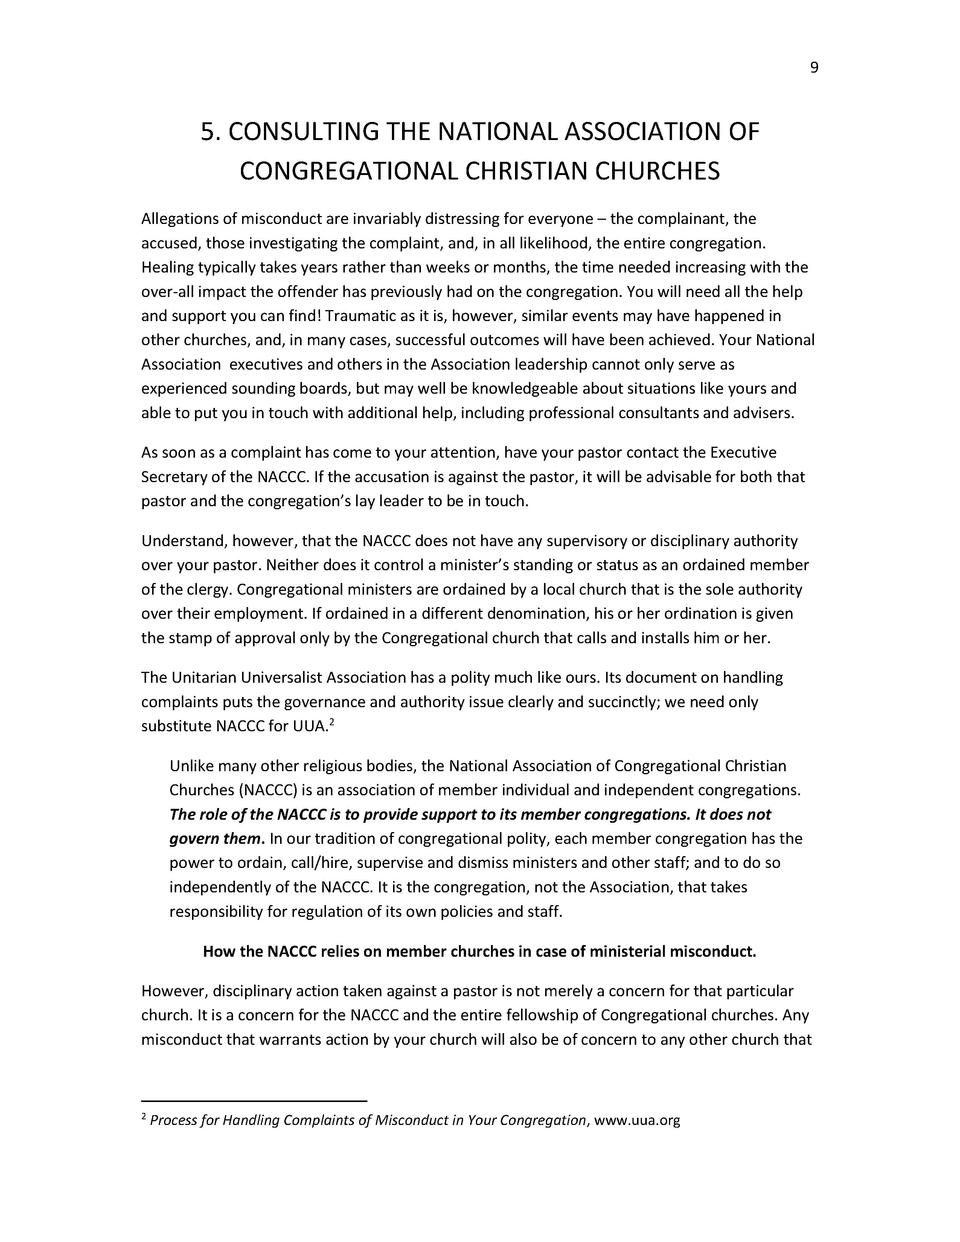 9  5. CONSULTING THE NATIONAL ASSOCIATION OF CONGREGATIONAL CHRISTIAN CHURCHES Allegations of misconduct are invariably di...